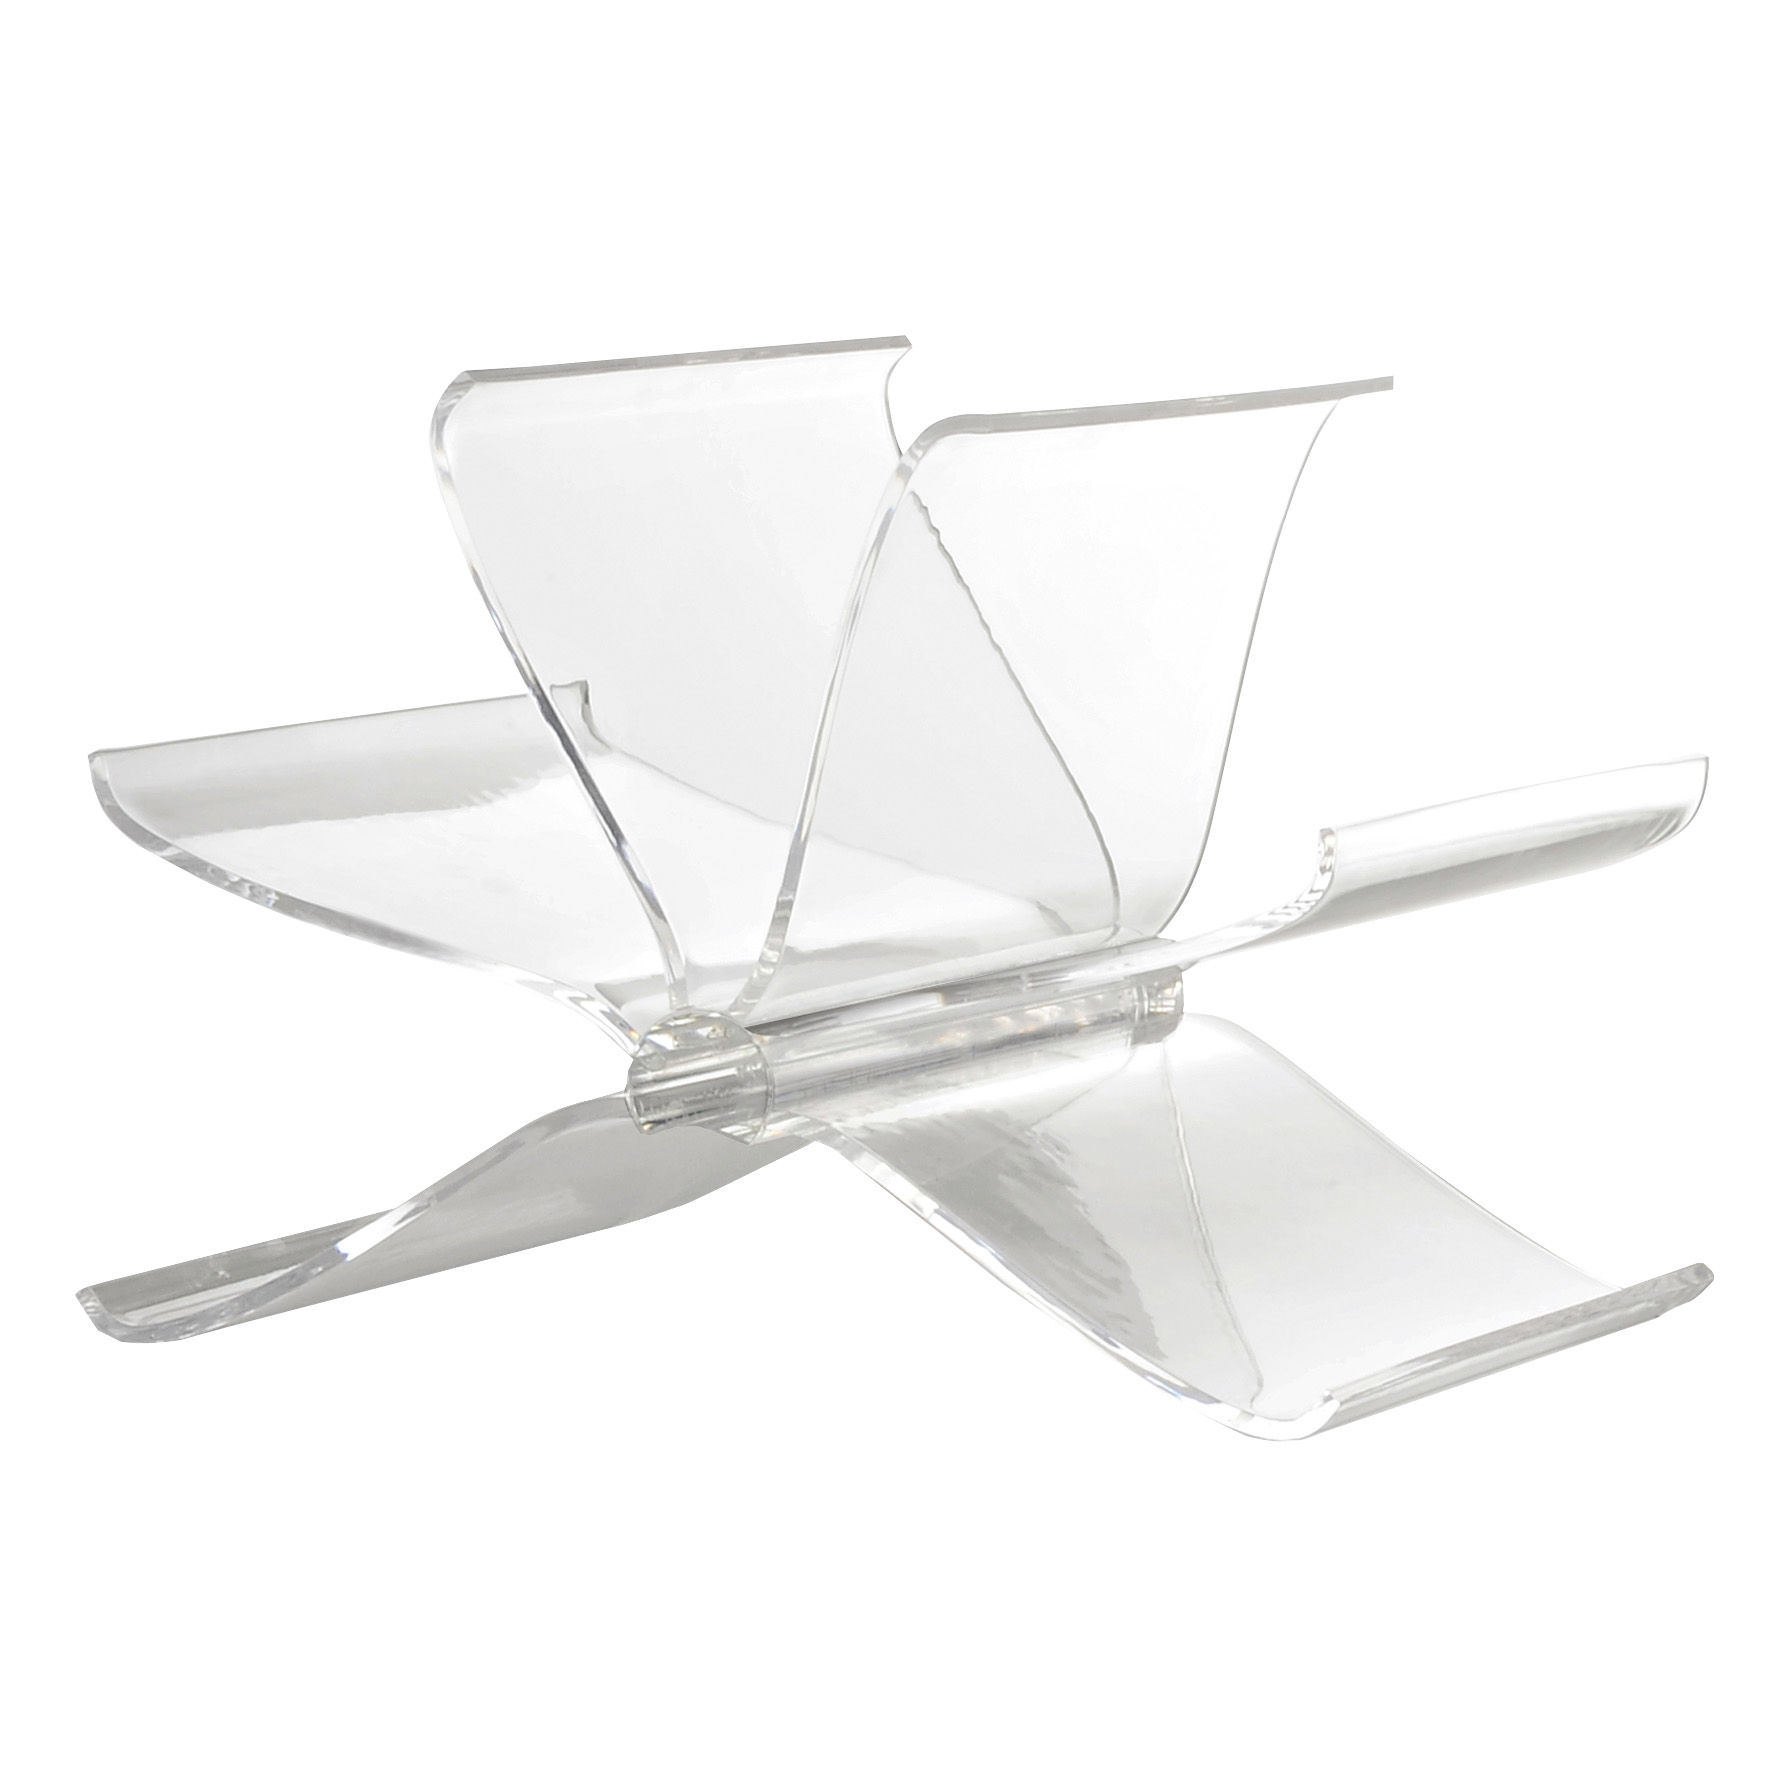 Decoration - Boxes & Baskets - Front Page Magazine holder by Kartell - Cristal - PMMA